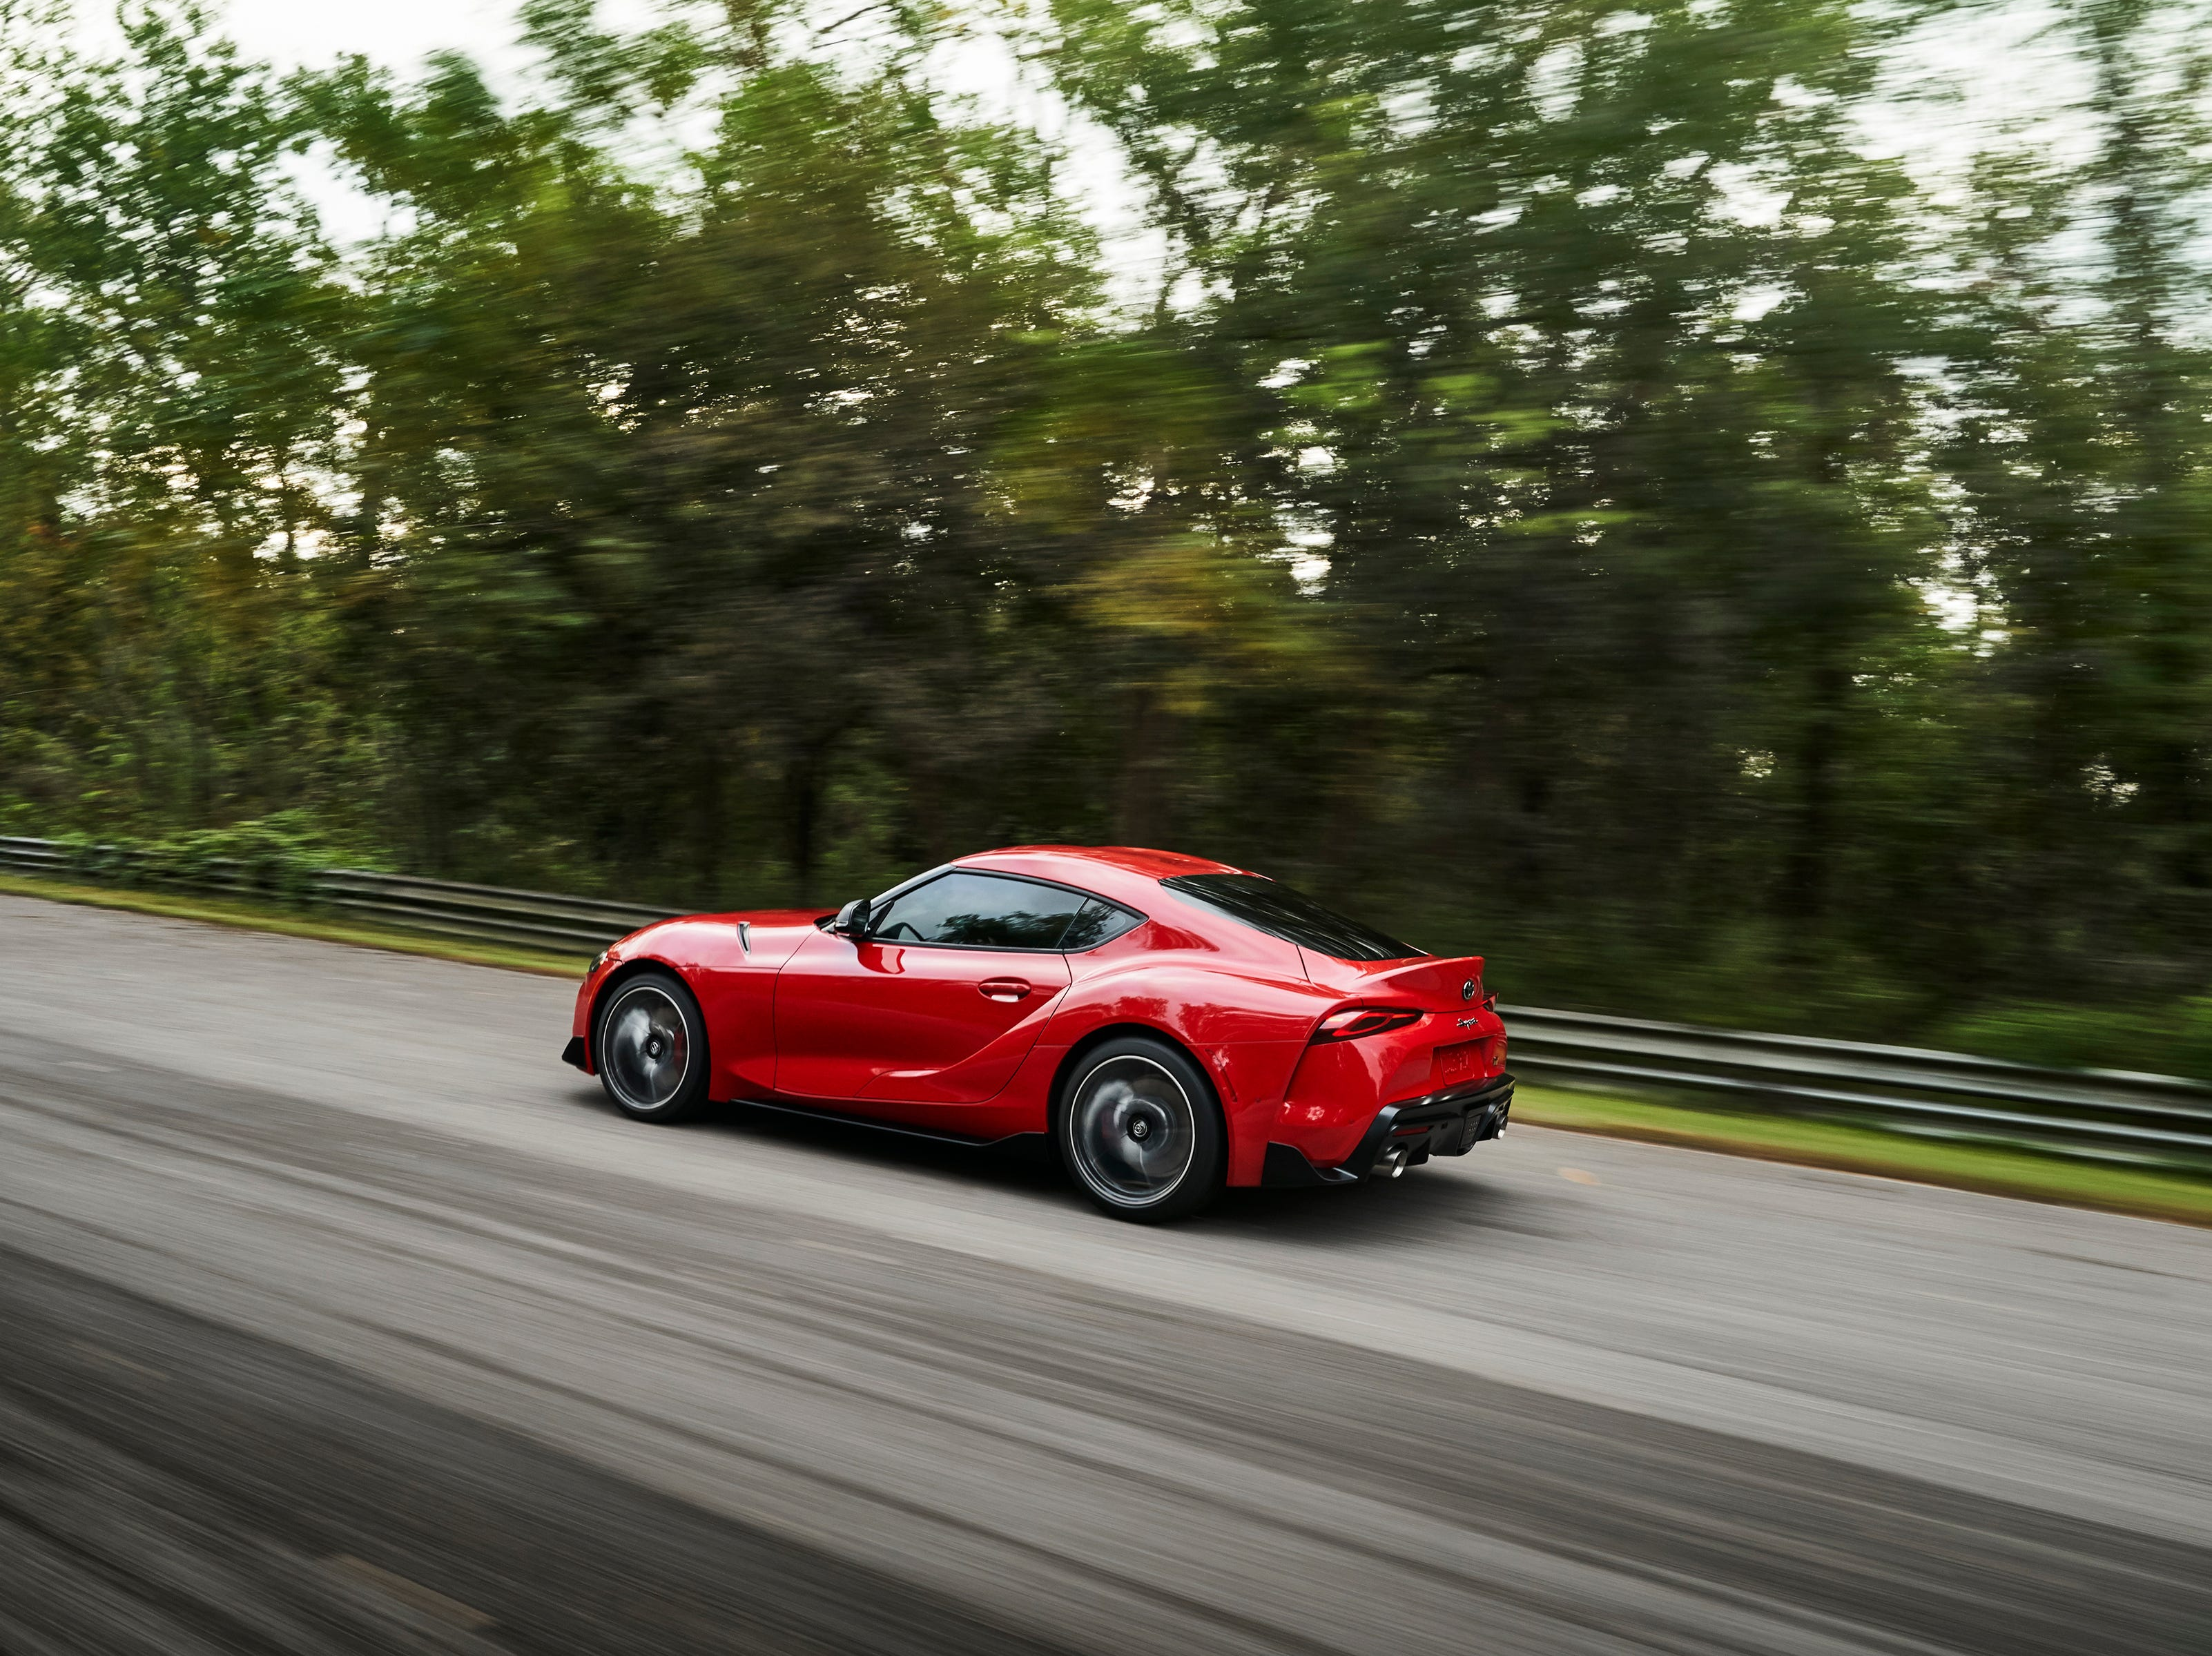 """""""The 2020 Toyota Supra will be powered by a turbocharged inline six-cylinder engine. The new Supra's 3.0-liter twin-scroll turbo six will produce 335 hp and 365 lb-ft of torque and will be teamed with a quick-shifting 8-speed automatic transmission with paddle shifters. Toyota projects 0-60 mph acceleration in 4.1 seconds."""""""